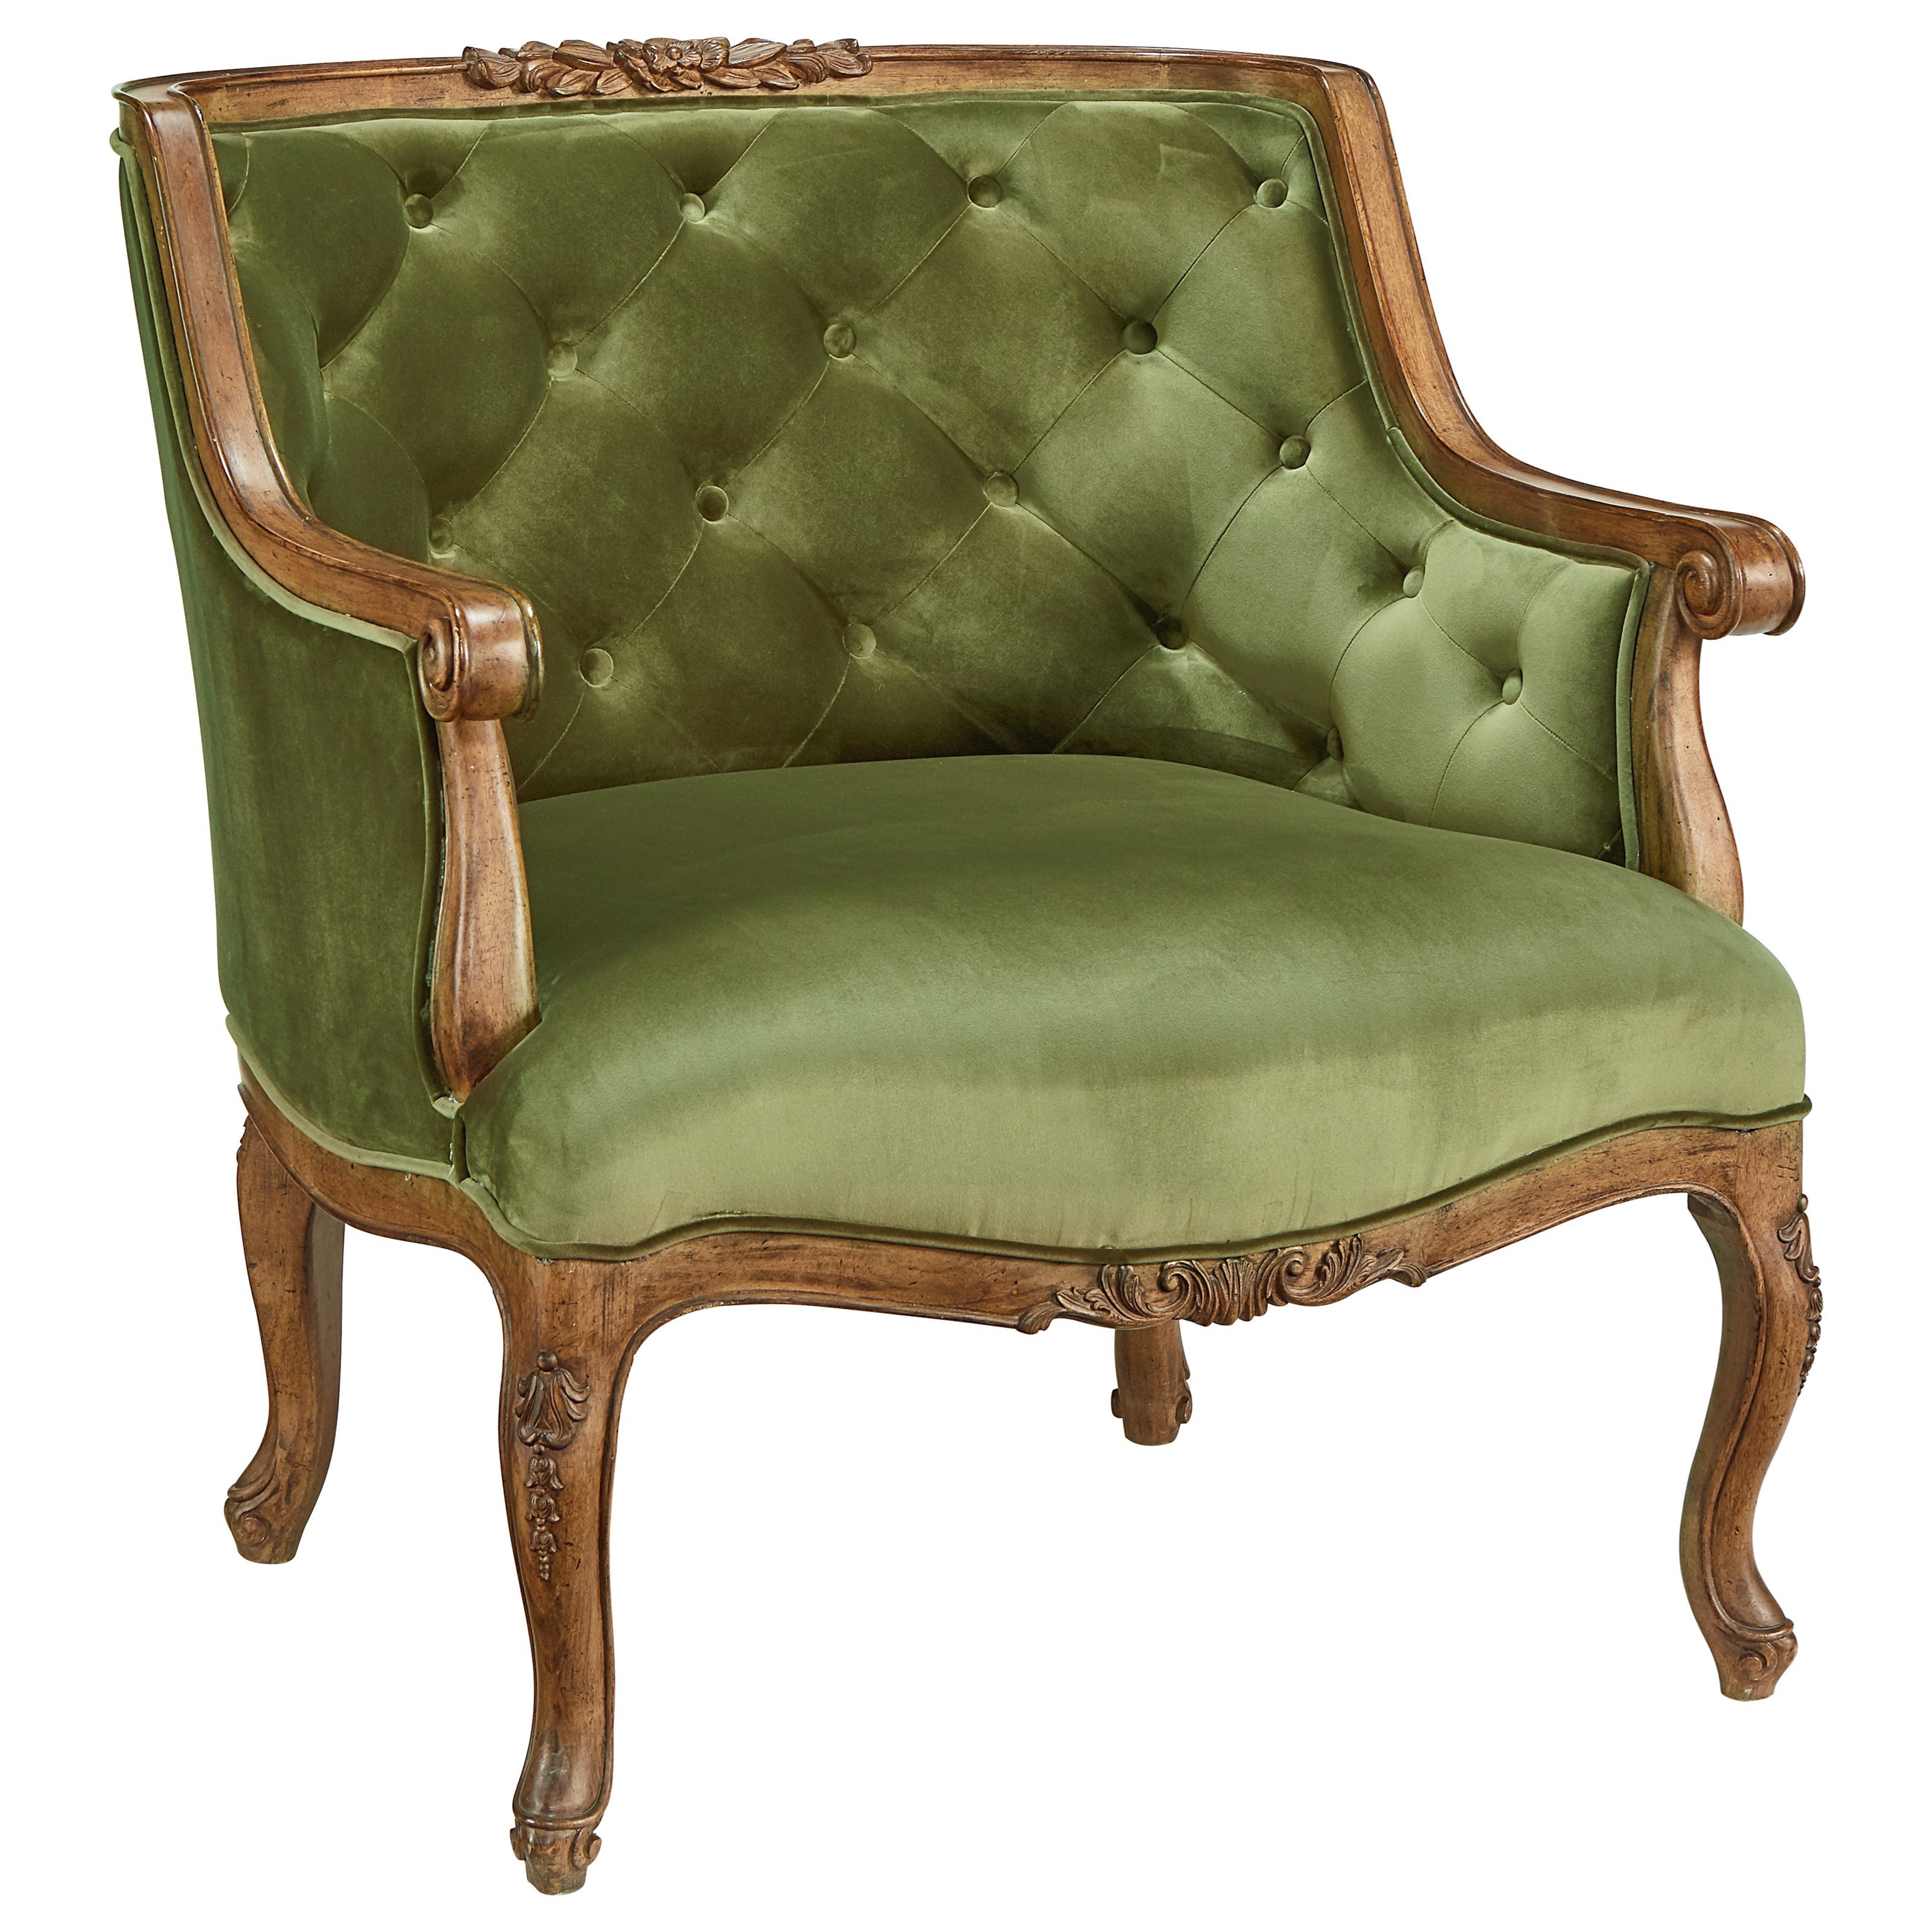 Magnolia home by joanna gaines accent chair 80612040 bloom for Upholstered accent chairs cheap